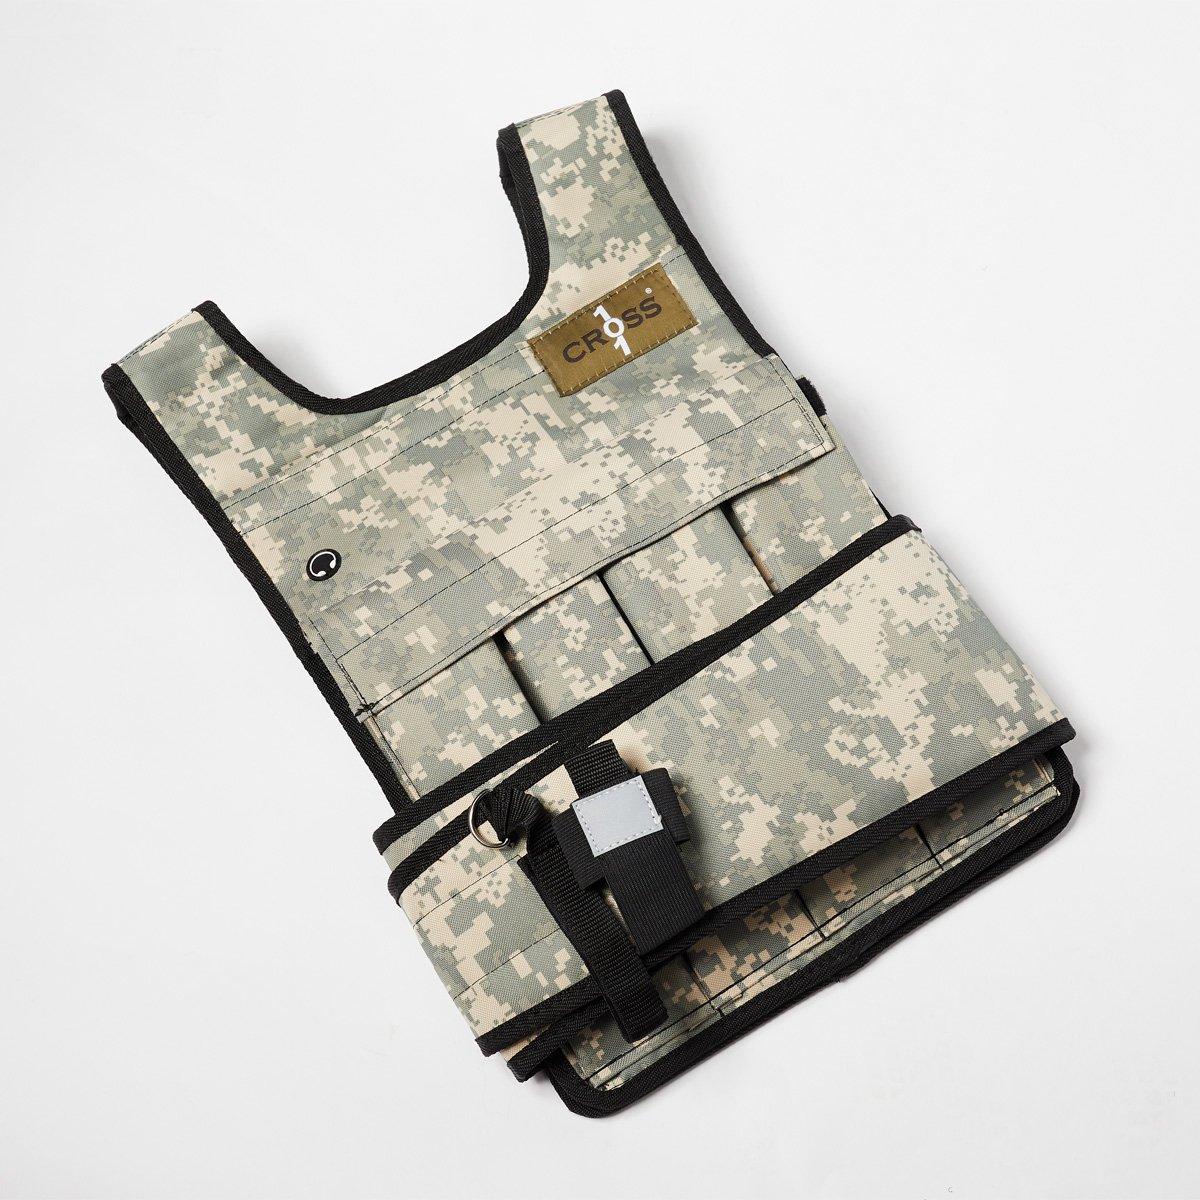 CROSS101 Camouflage Adjustable Weighted Vest (20lbs - 80lbs) with Phone Pocket & Water Bottle Holder (20-lbs)